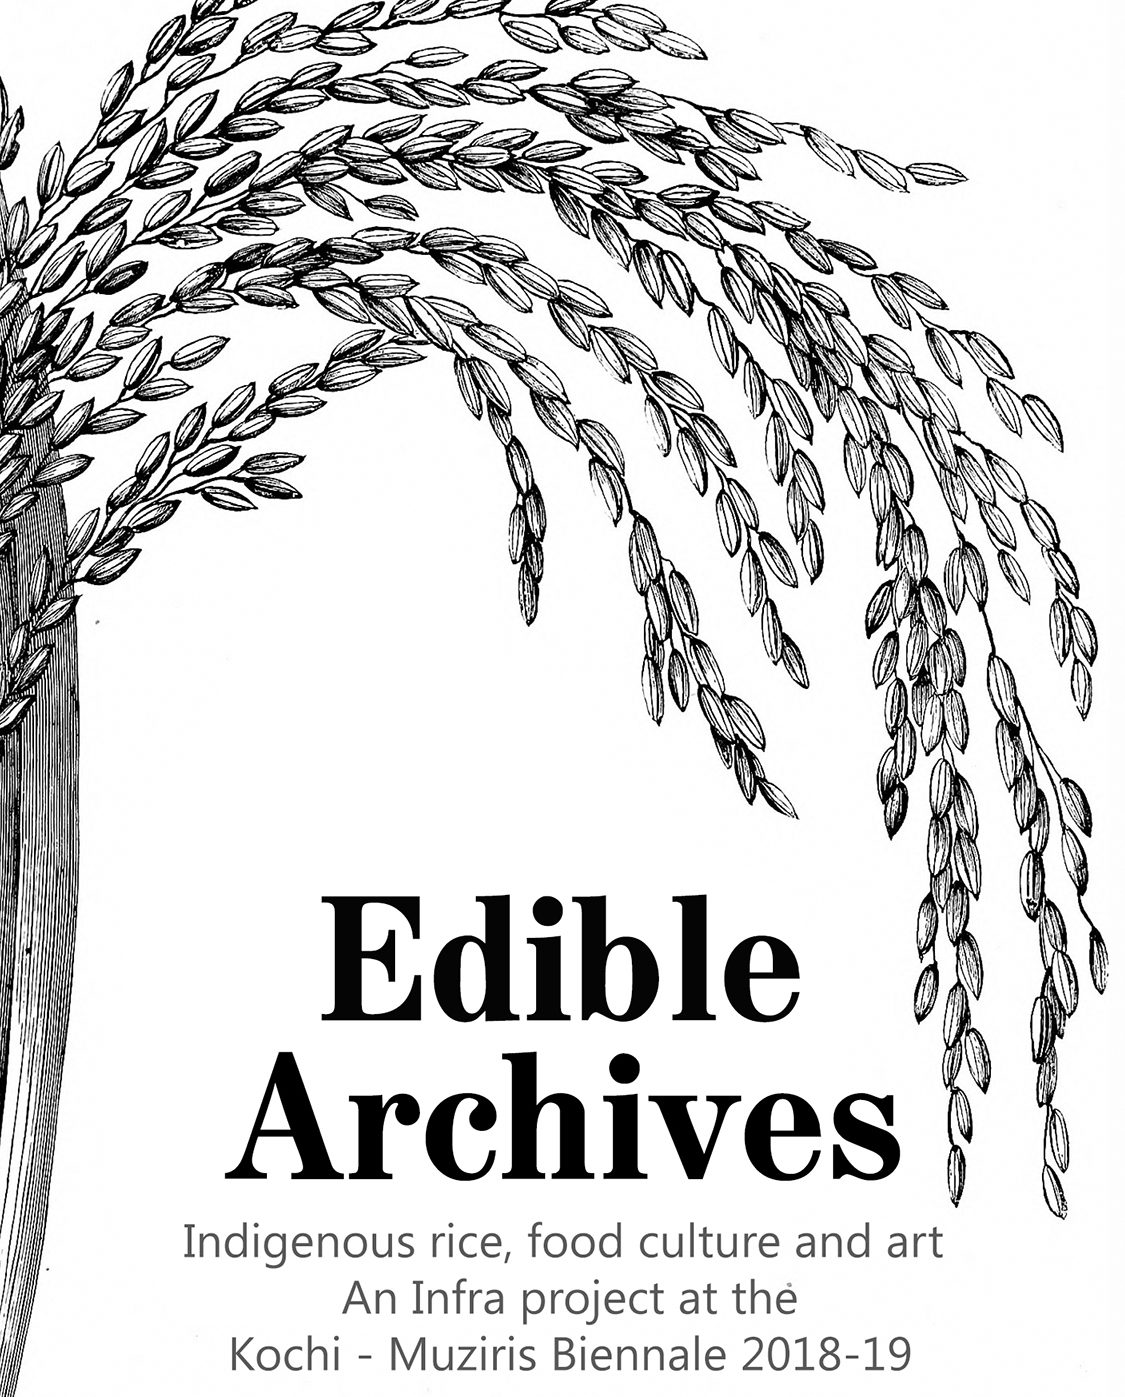 Edible Archives Project